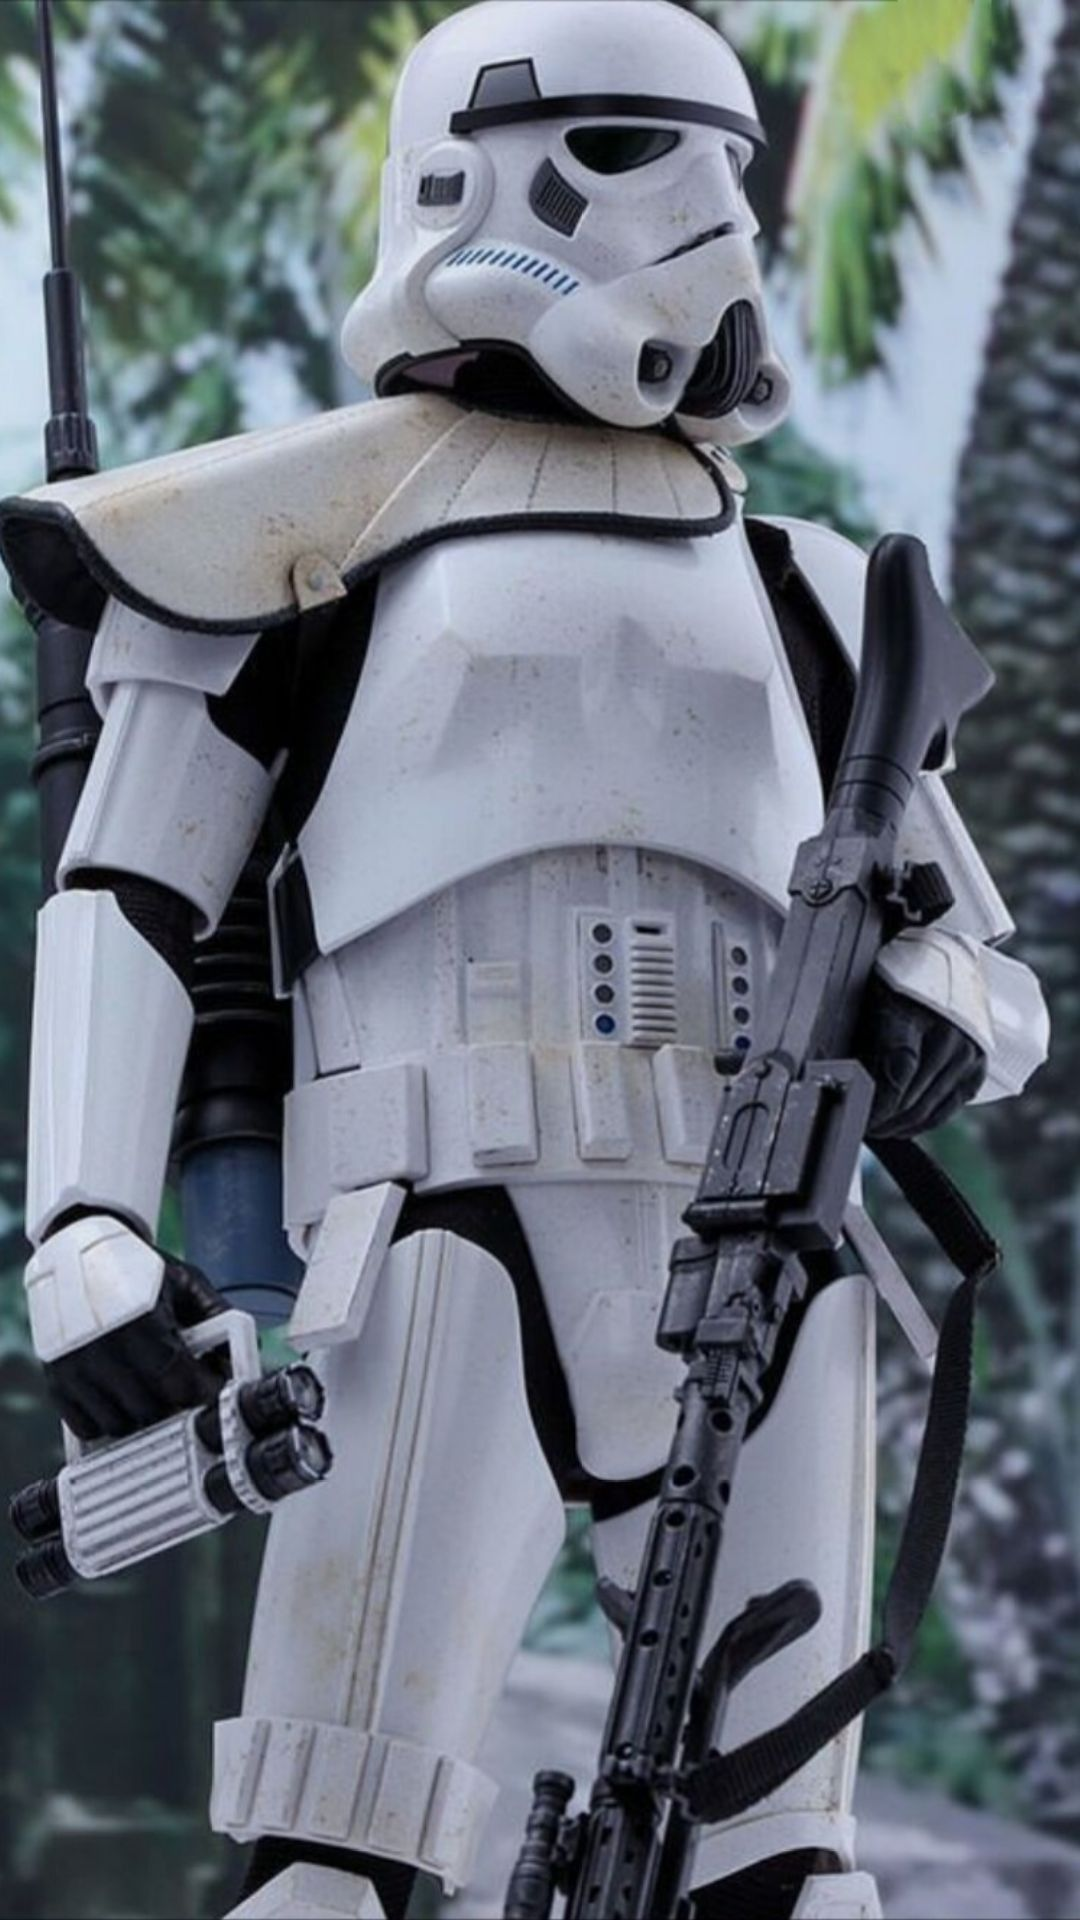 stormtrooper rogue one wars ships galactic